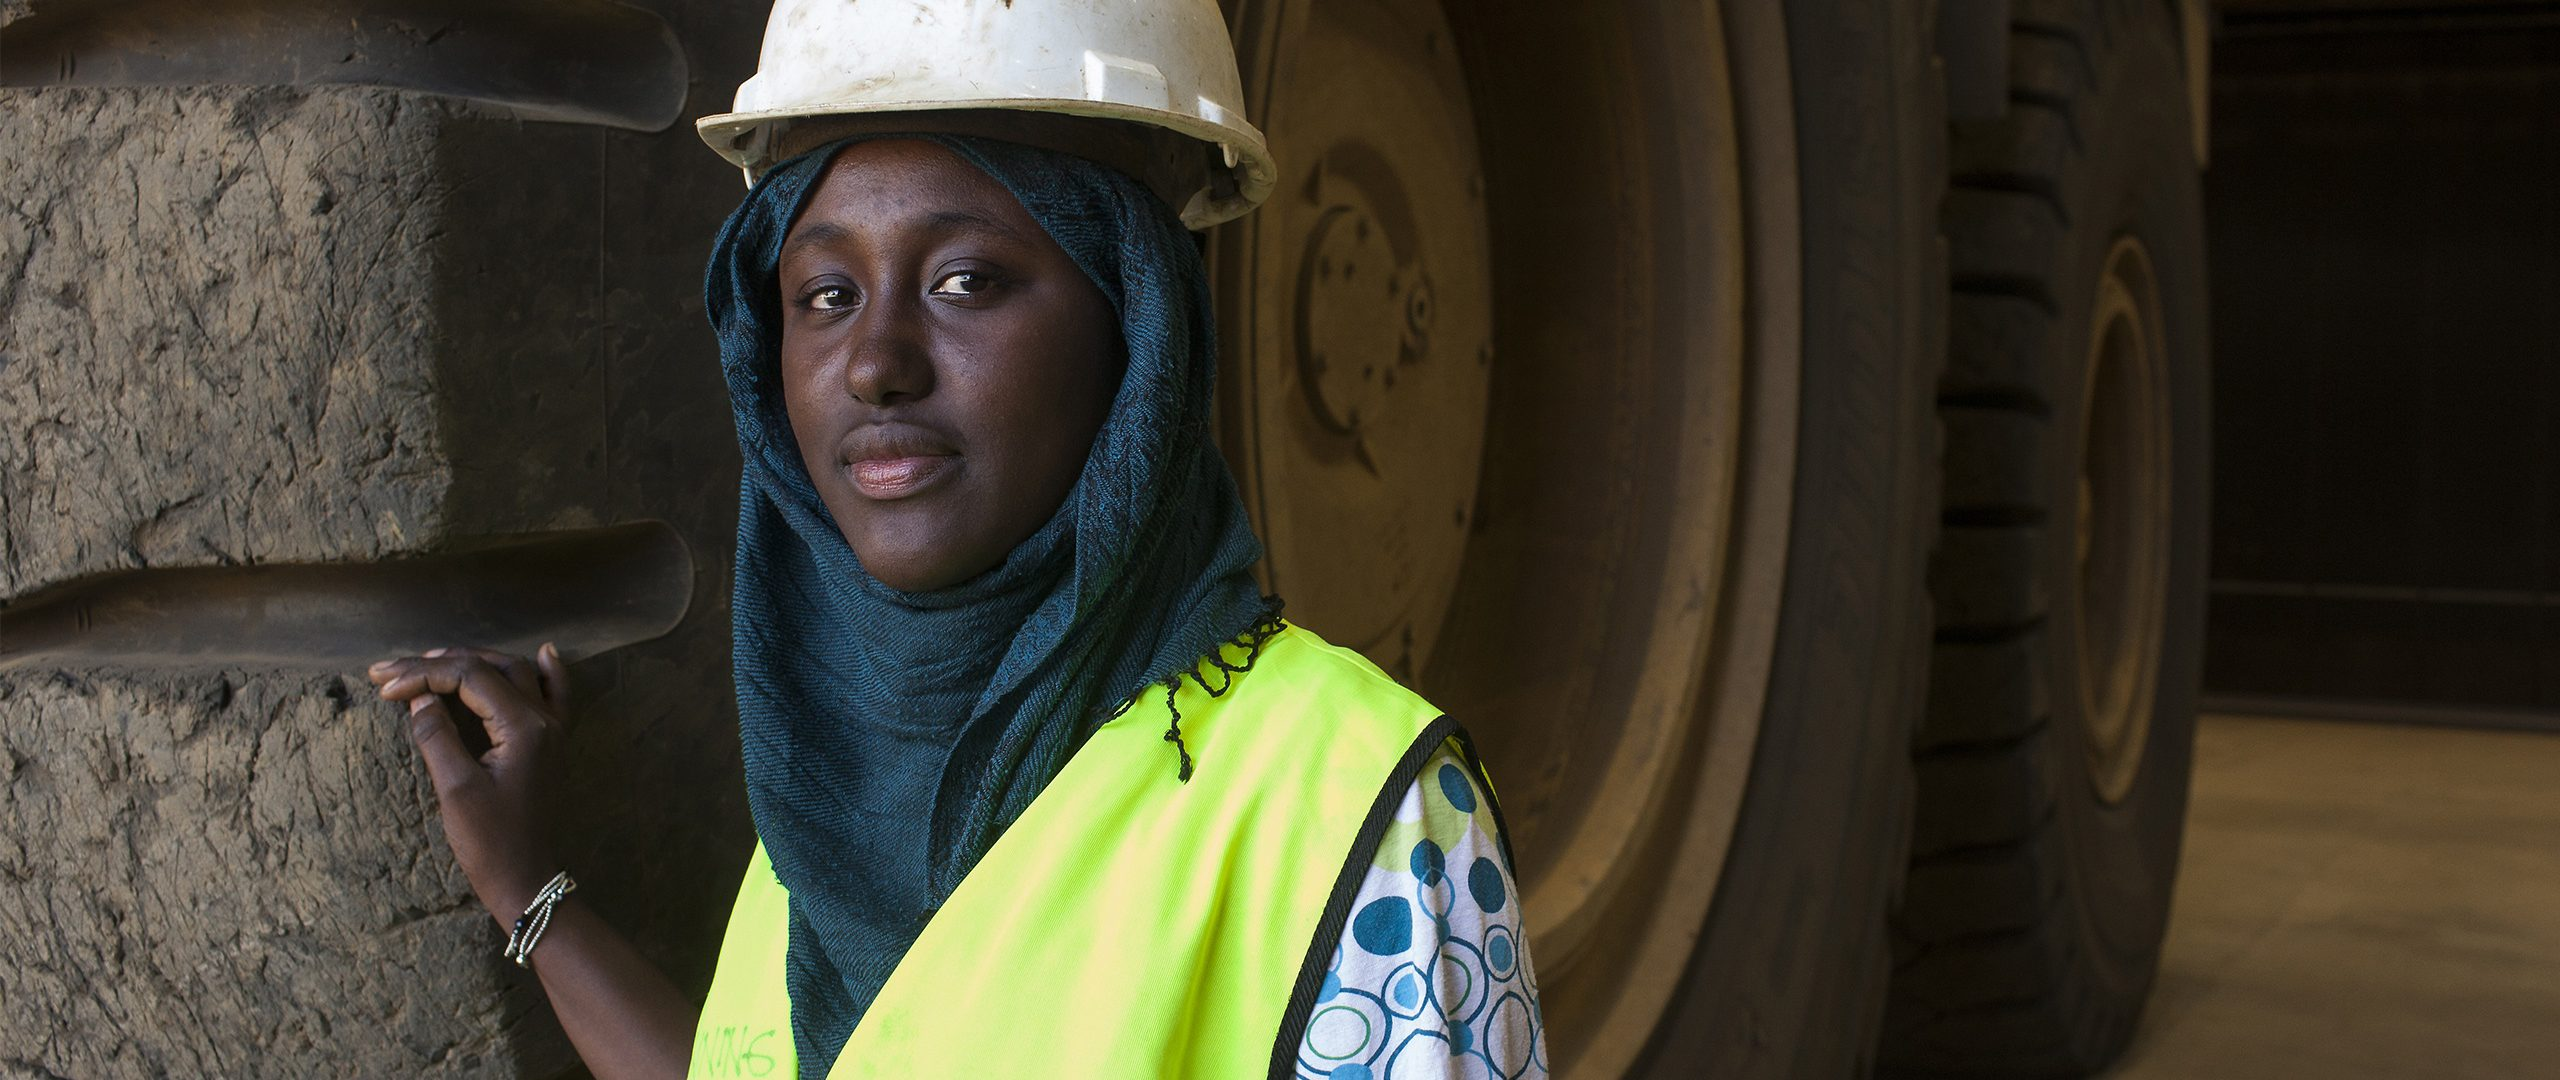 A woman in a headscarf and hard hat rests her hand on a tire so tall that it spills far out of the photograph.